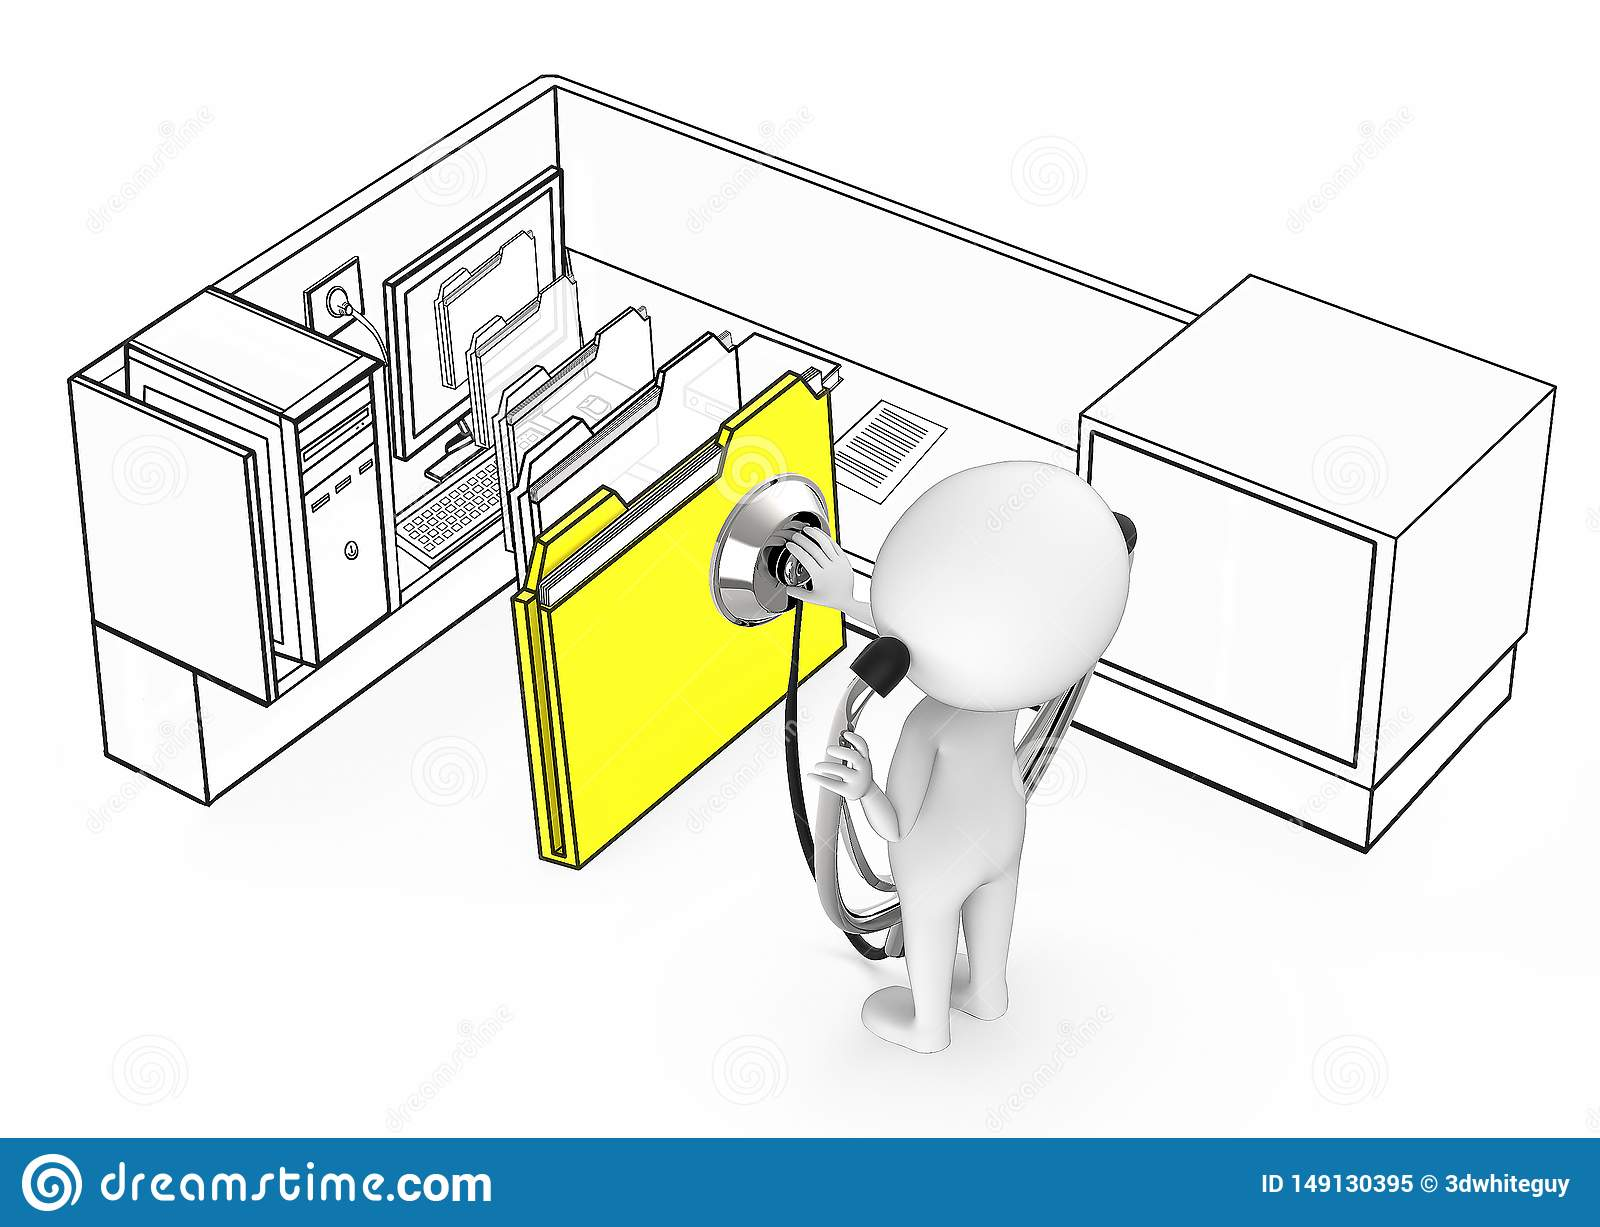 3d white guy wearing stethoscope and diagnosing file folder coming out from a monitor of a computer inside a office cubicle